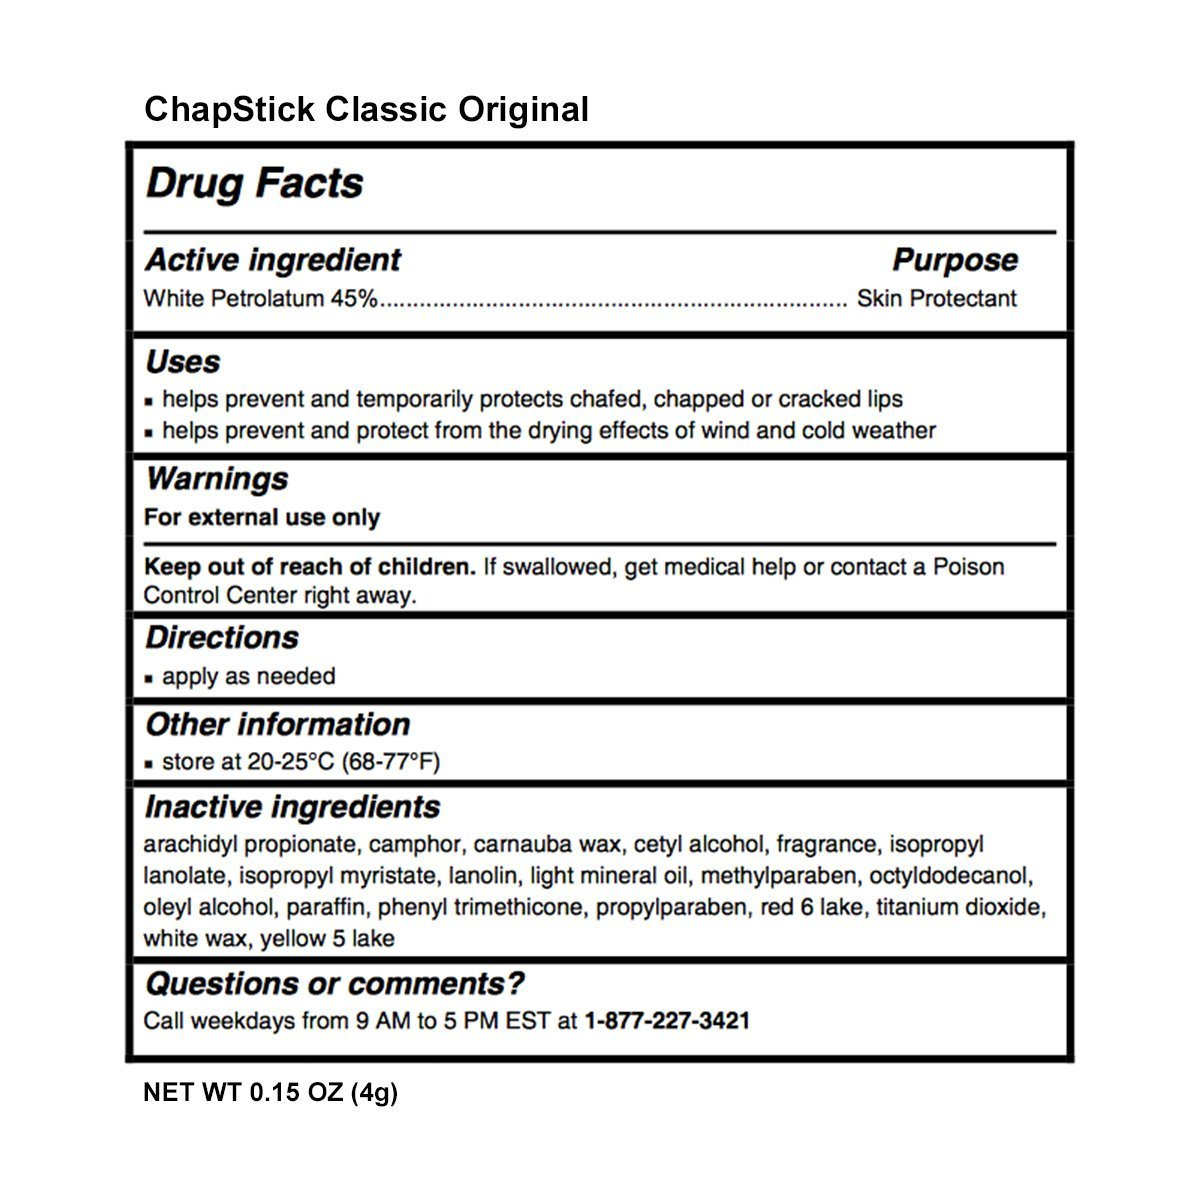 ChapStick Classic (1 Box of 12 Sticks, 12 Total Sticks, Original Flavor) Skin Protectant Flavored Lip Balm Tube, 0.15 Ounce Each,12 Count (Pack of 1) by Chapstick